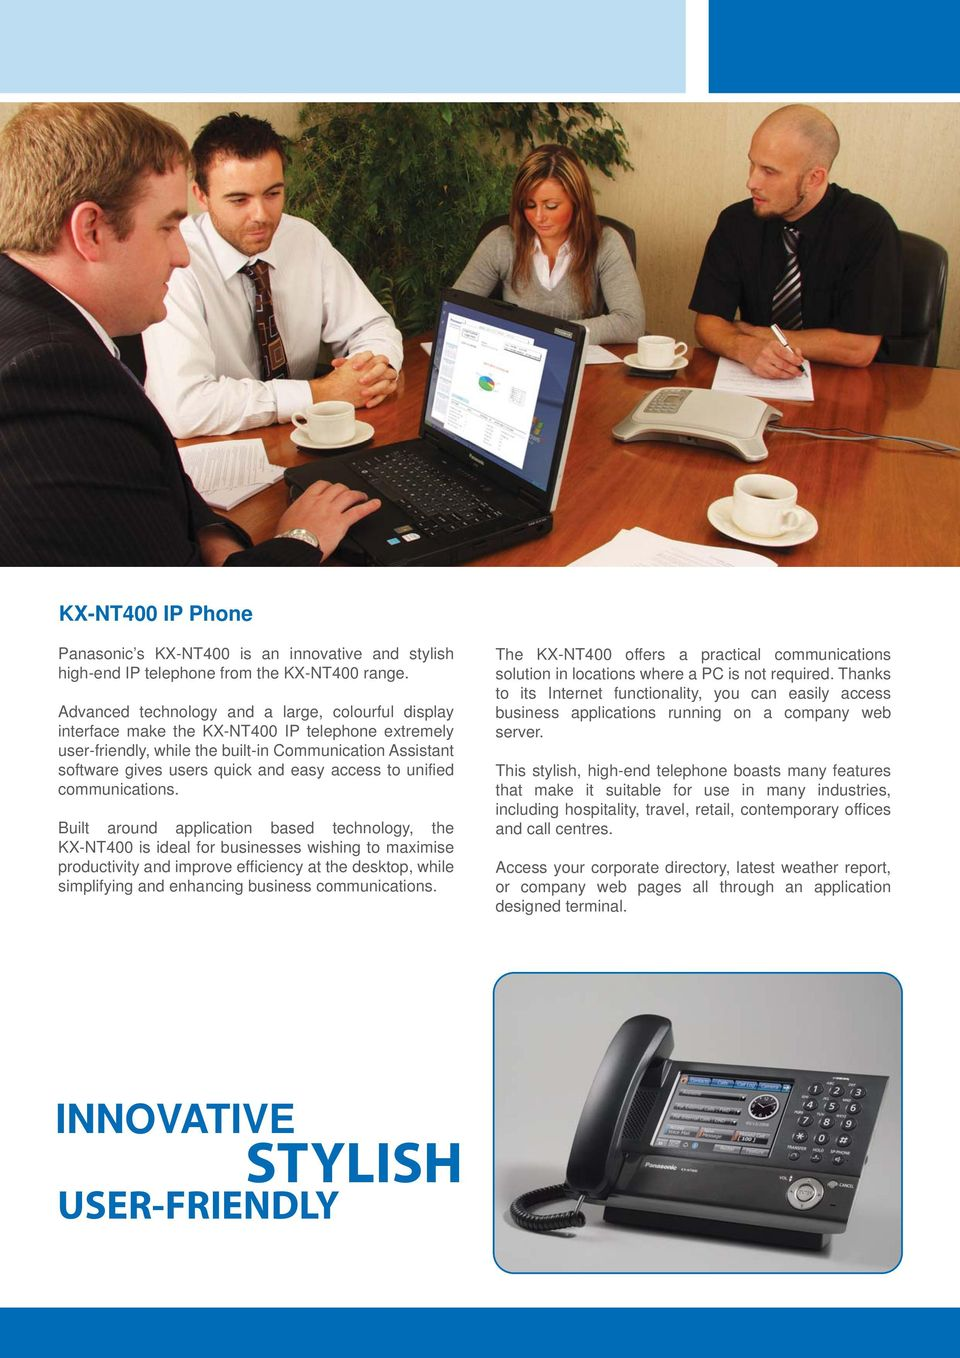 access to unified communications.